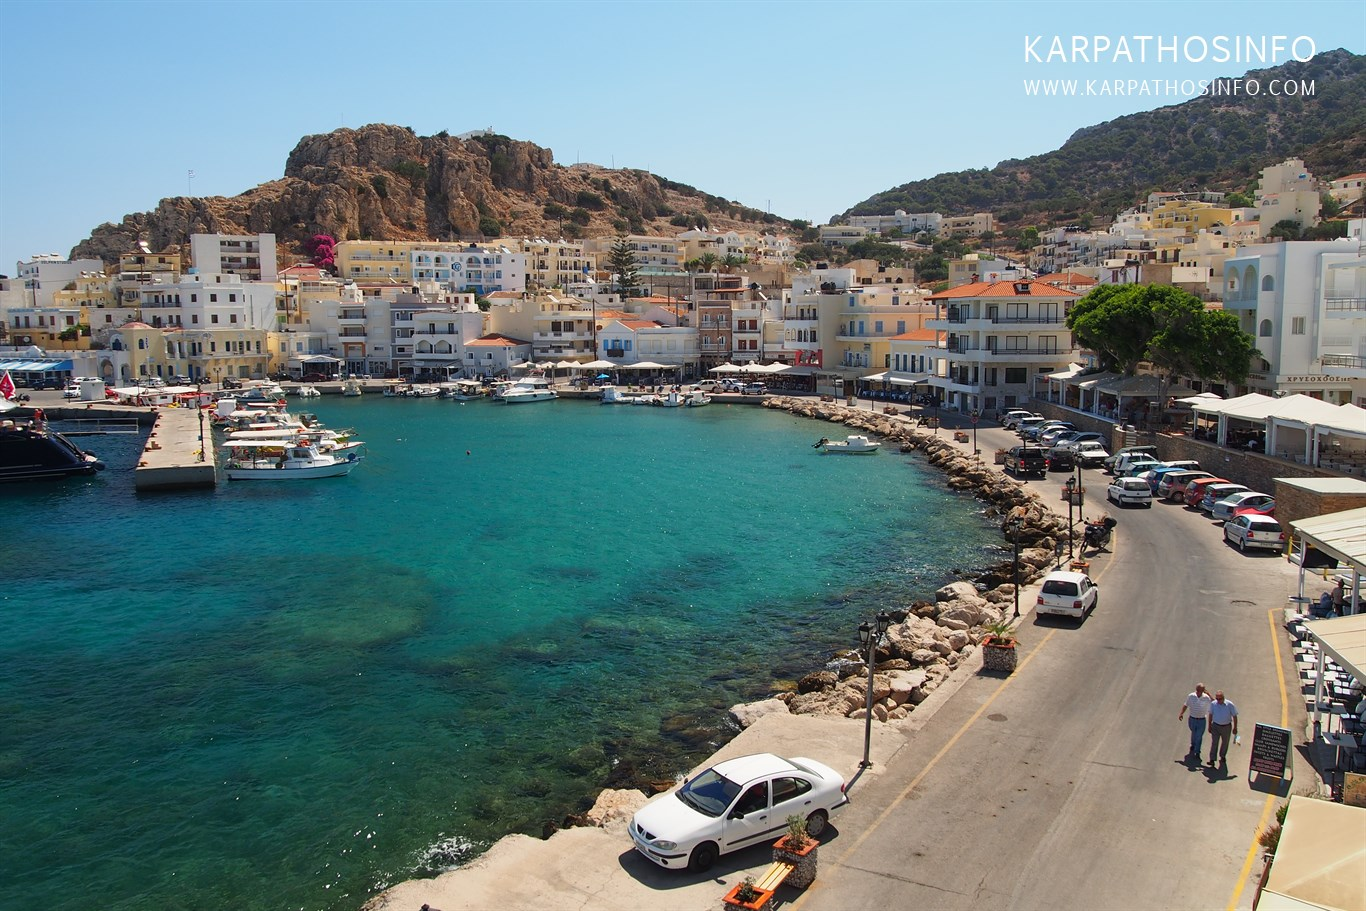 Informations about Karpathos island